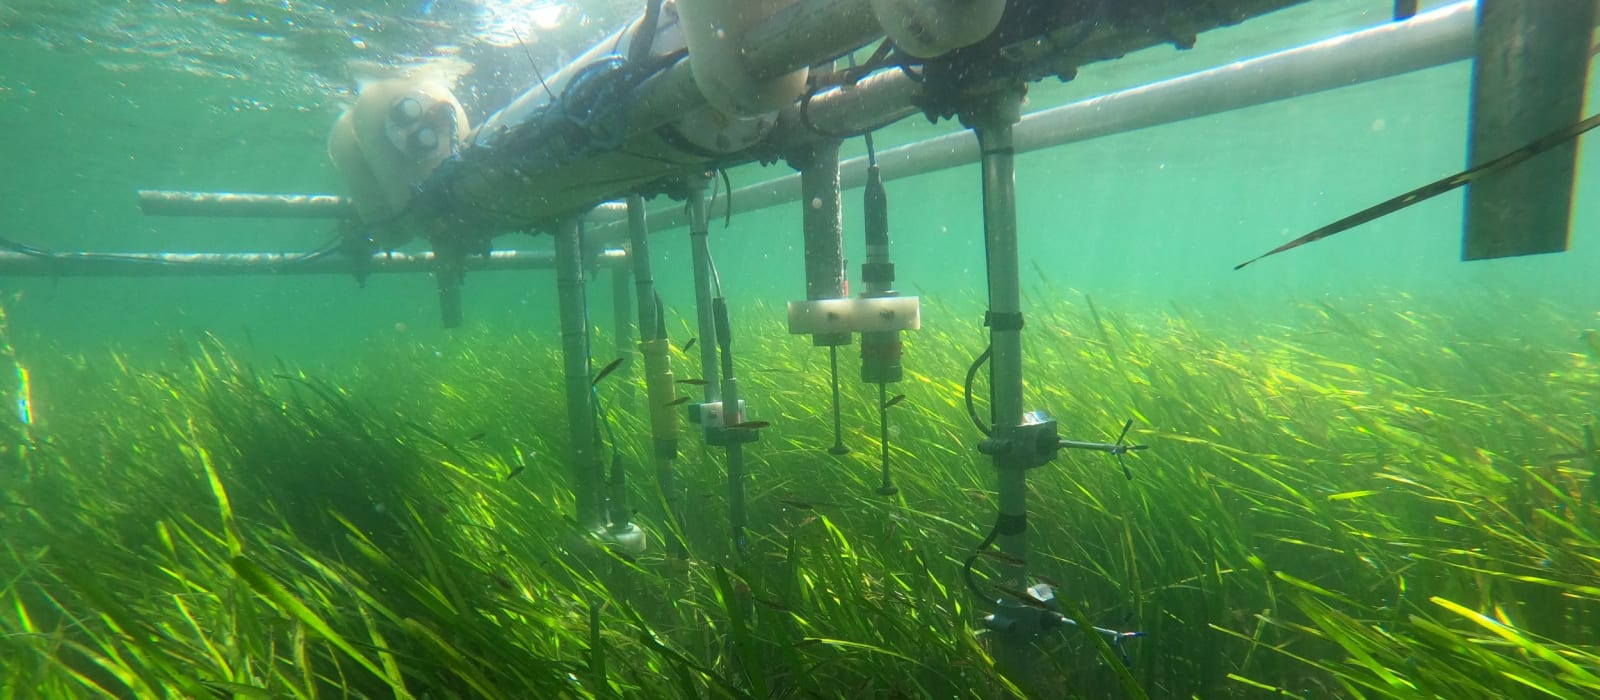 Seagrass, Sediment and Saving Our Sandy Beaches